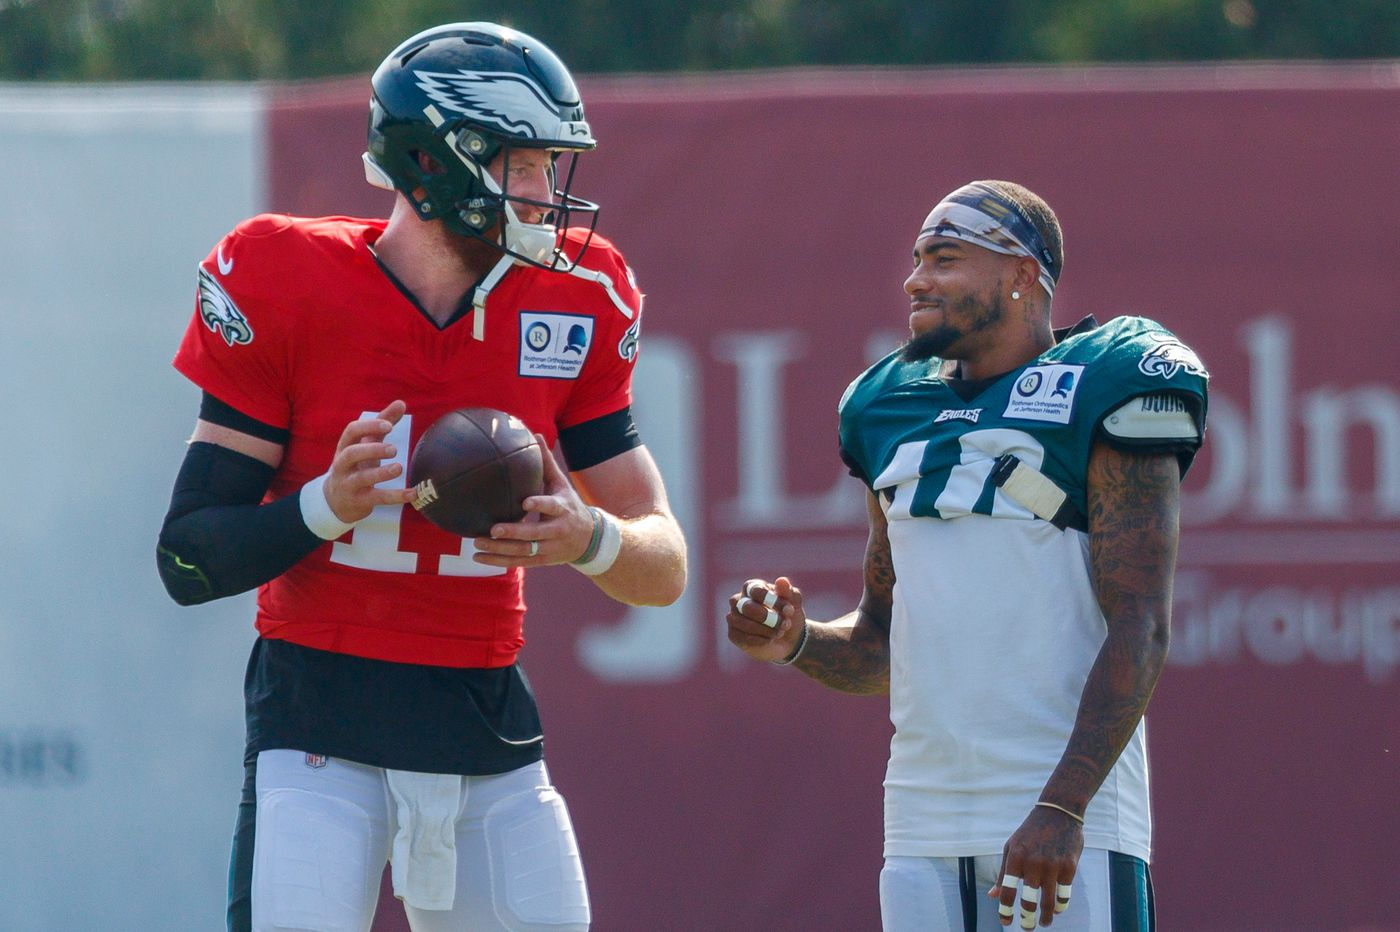 Carson Wentz and the deep ball: Not yet perfect together